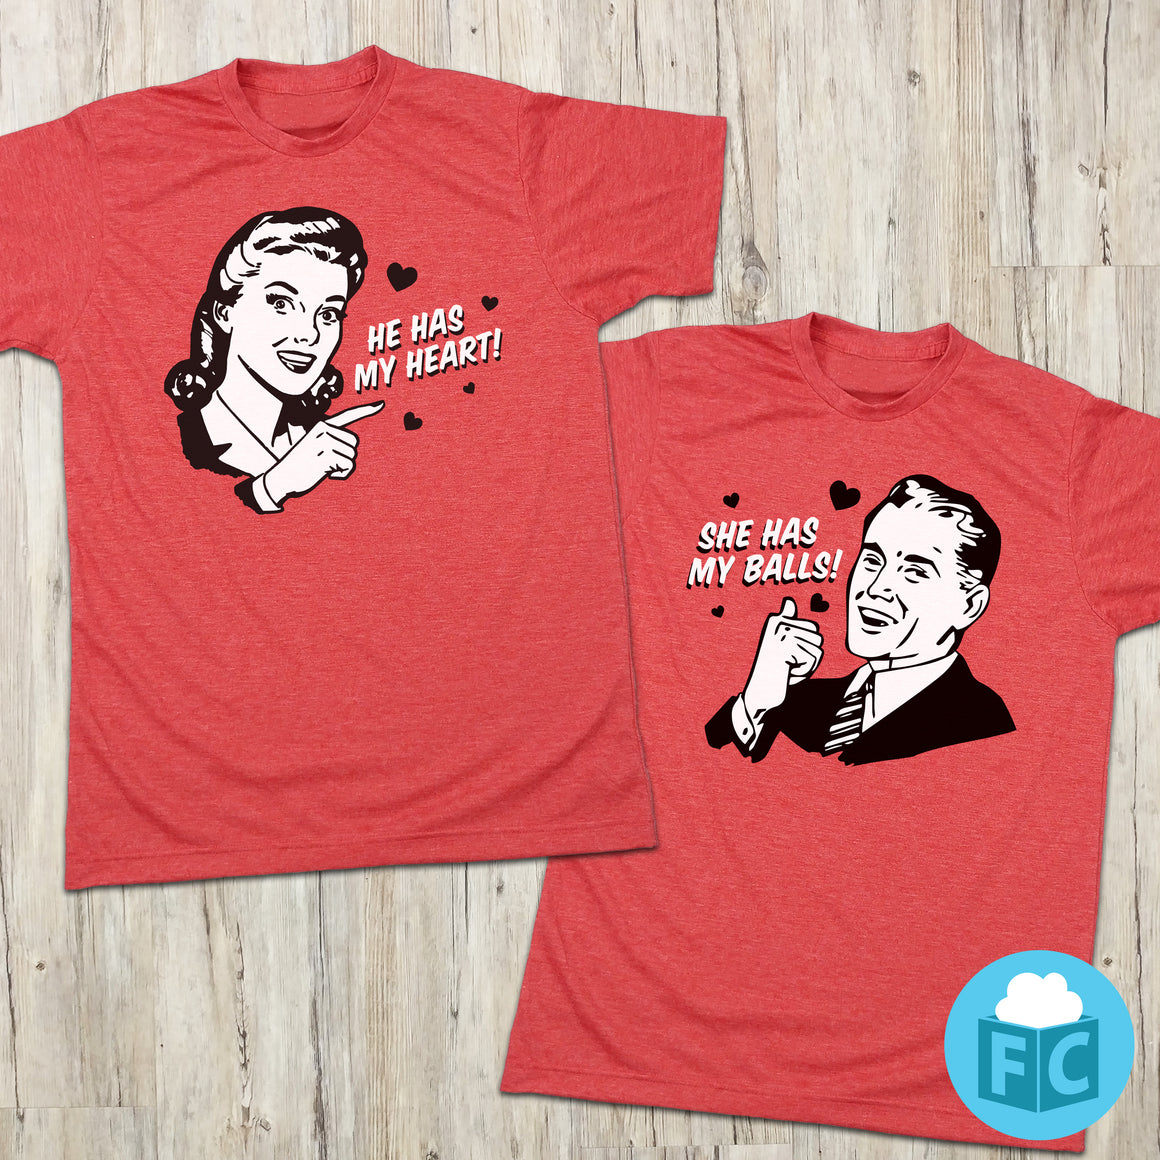 His & Her's Valentines Day Matching Tees